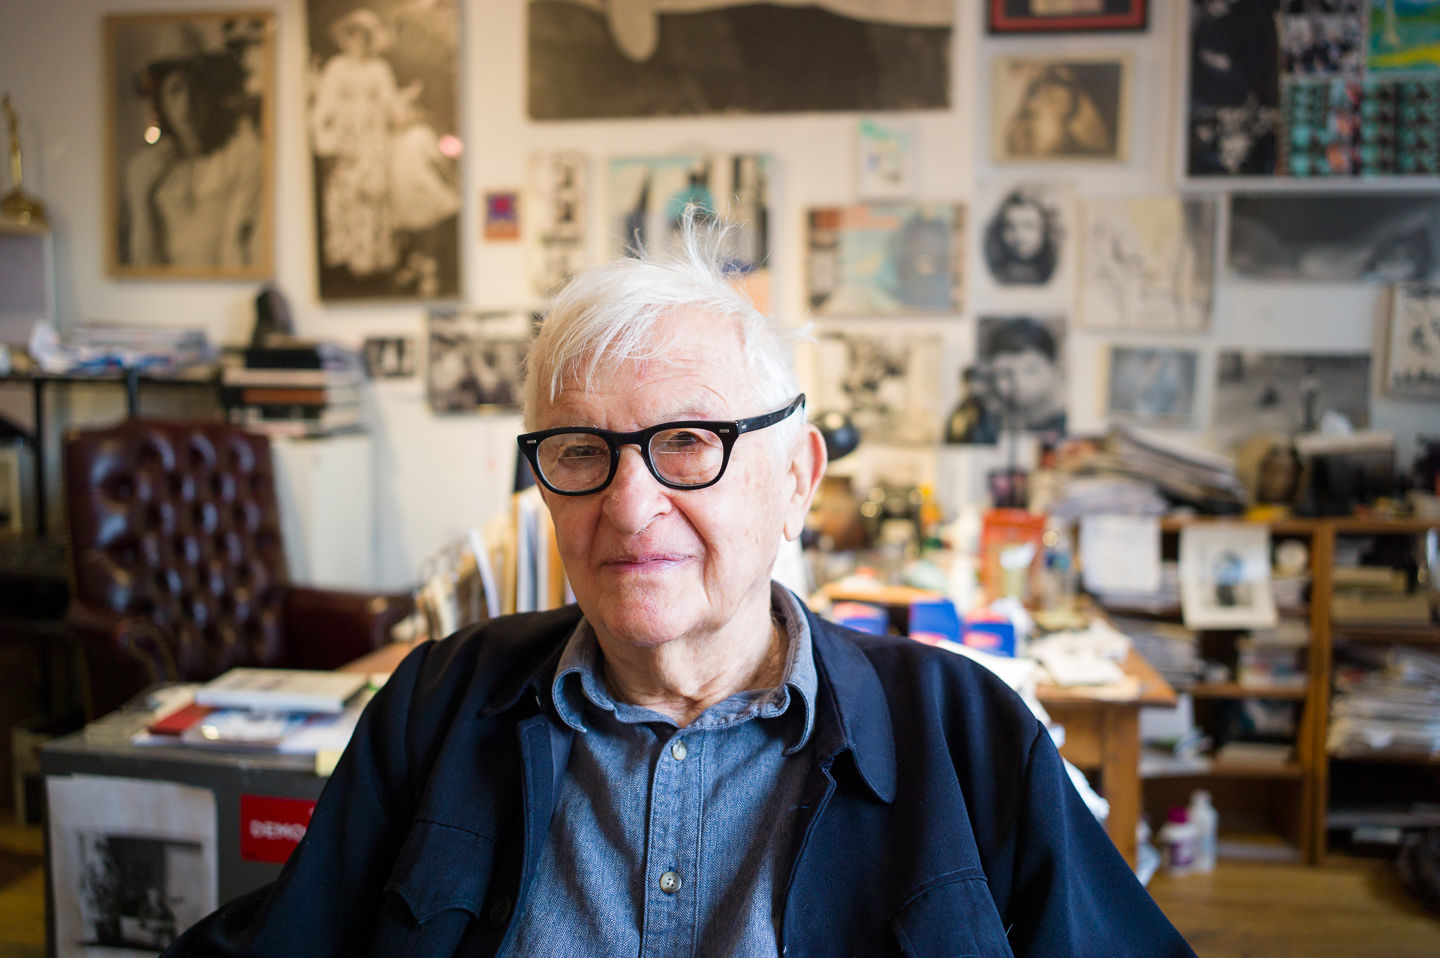 jon pack, photographer | albert maysles | portrait